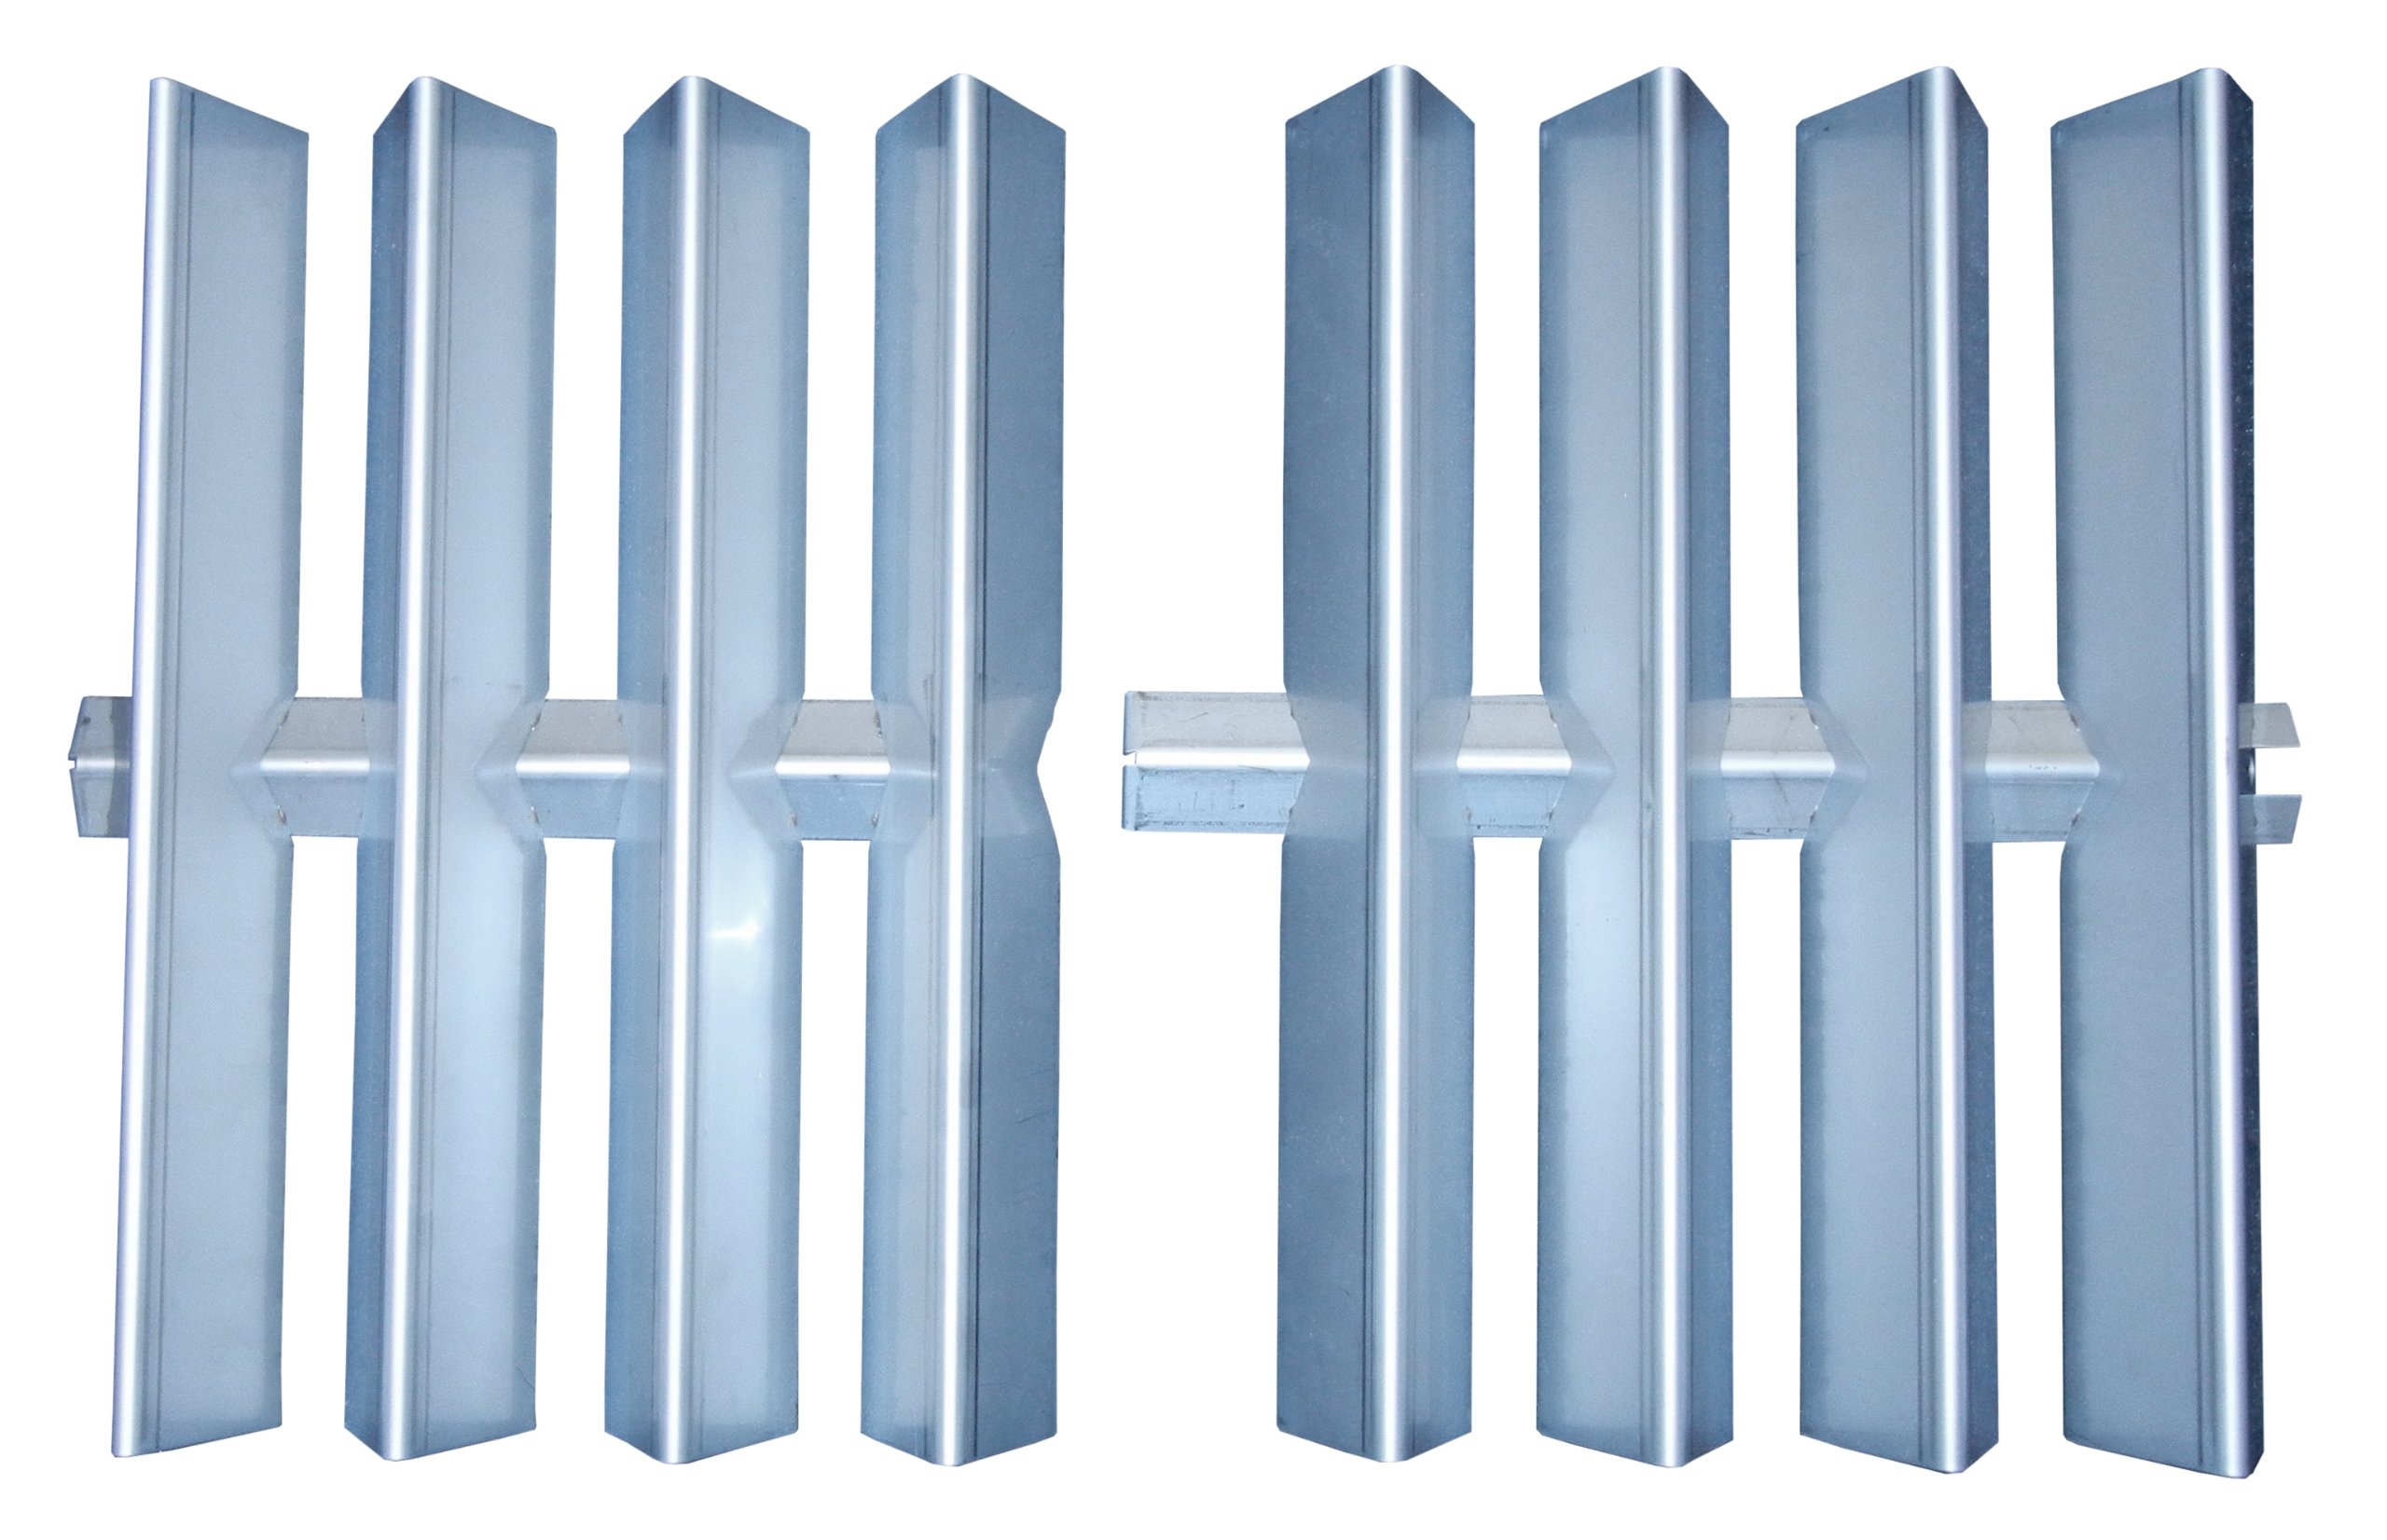 Music City Metals 98982 Stainless Steel Heat Plate Replacement for Select Weber Gas Grill Models, 15.875 by 26-Inch, Set of 2